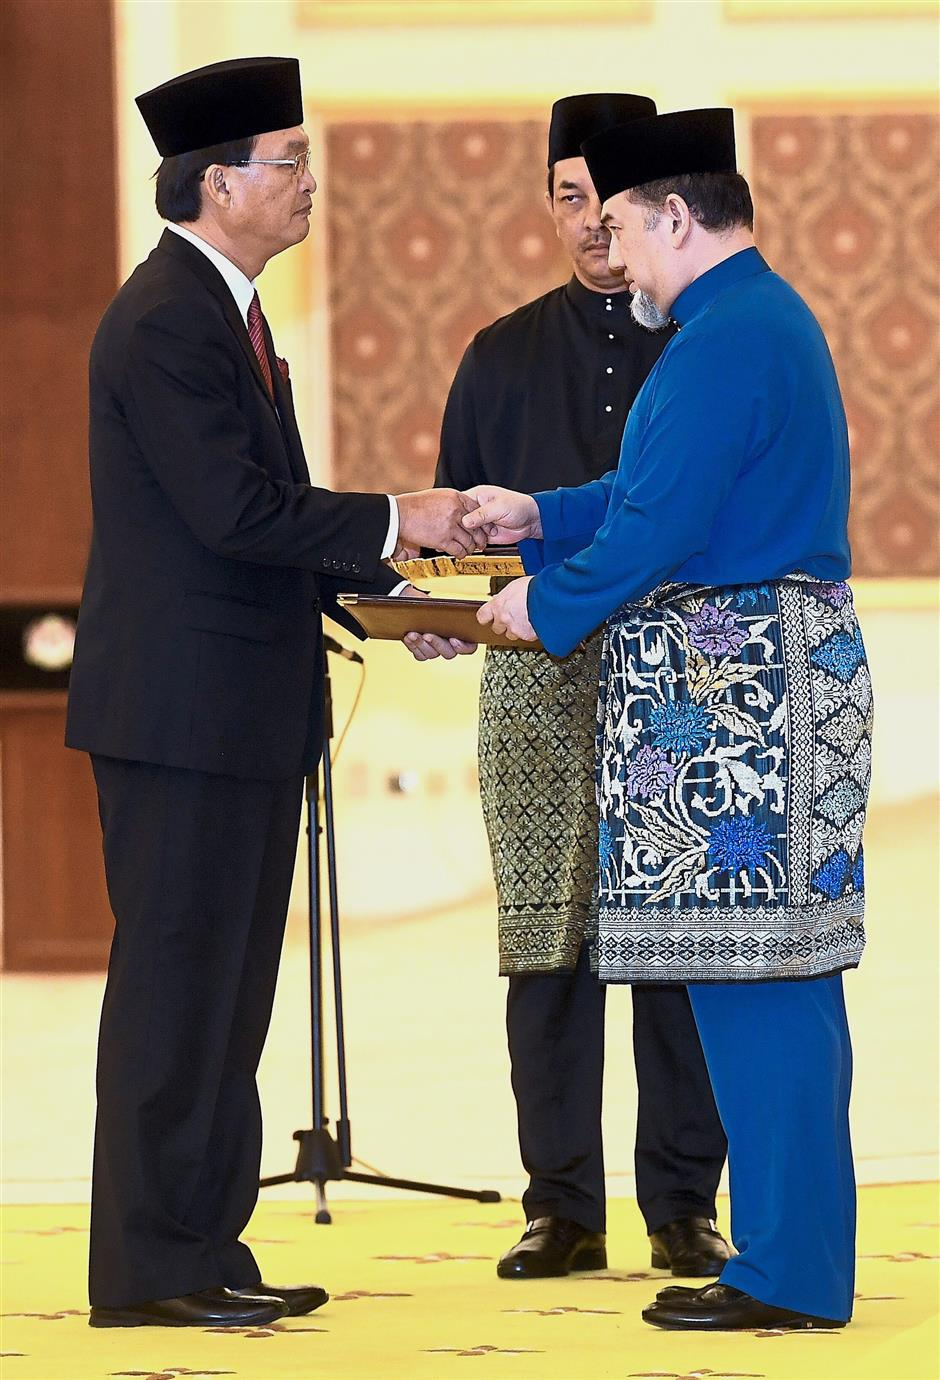 Yang di-Pertuan Agong Sultan Muhammad V (right) hands over the letter of appointment to Baru Bian at the swearing-in ceremony yesterday. u2014 Bernama